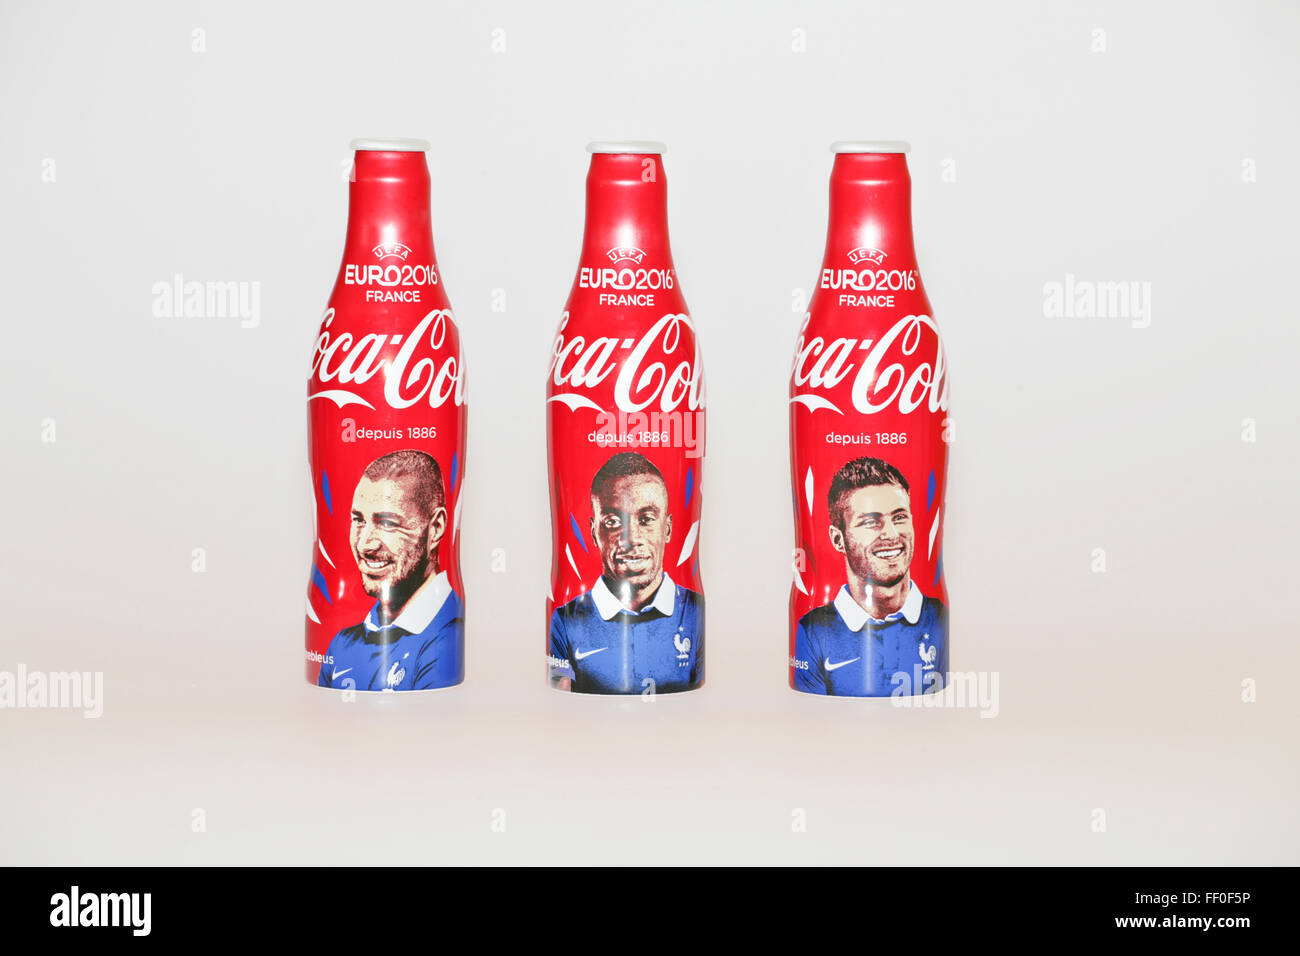 Coca cola bottles limited edition euro 2016 soccer in france stock photo roy - Coca cola edition limitee ...